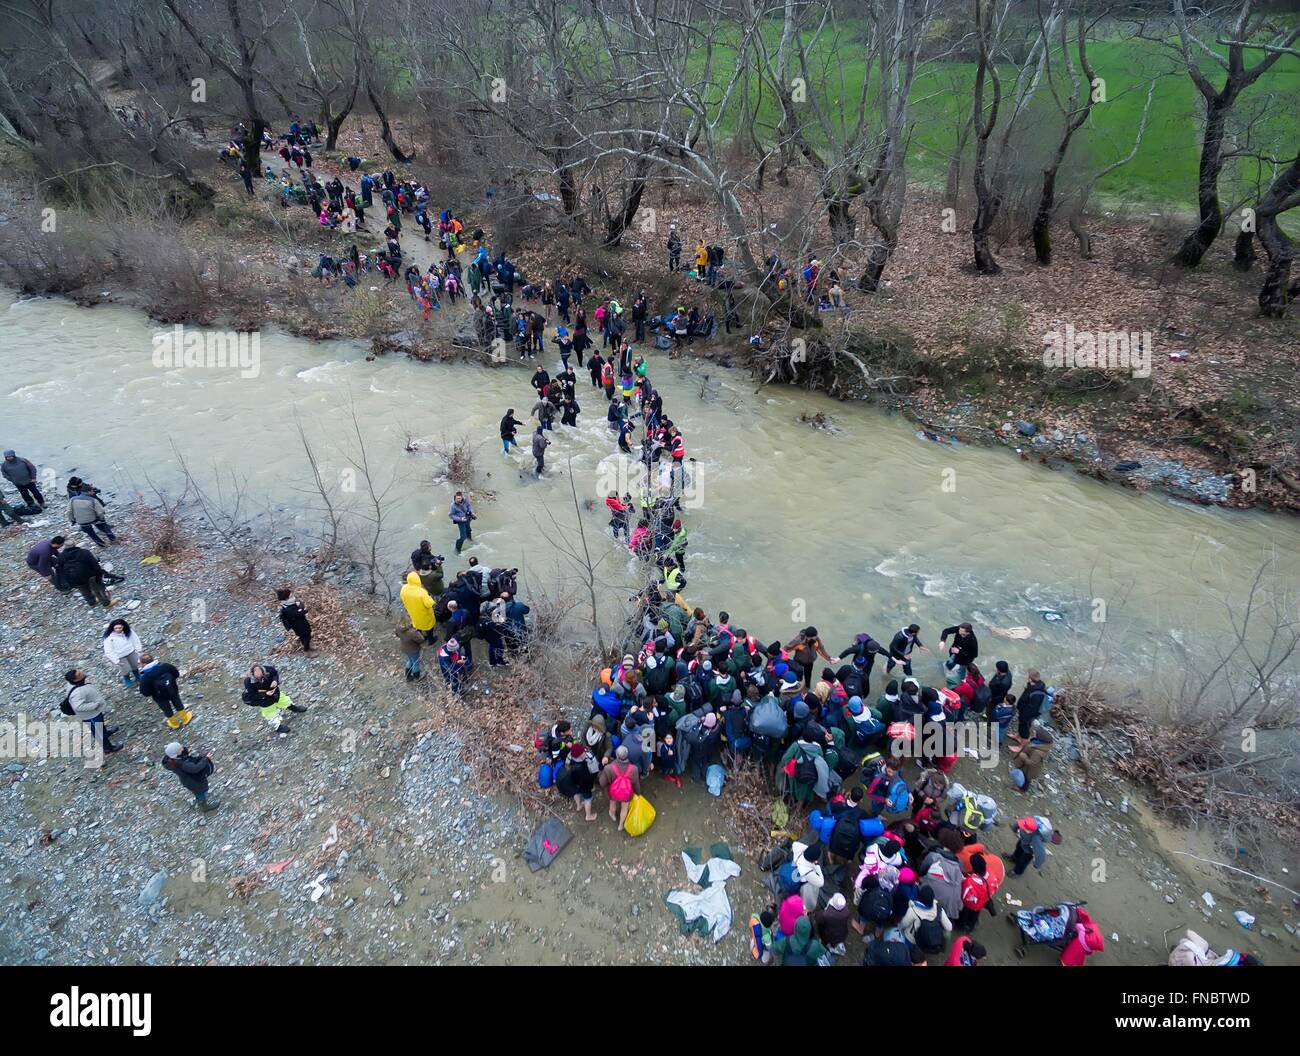 Chamilo, Greece. 14th March, 2016. Refugees try to cross a stream near the Greek village of Chamilo on March 14, Stock Photo